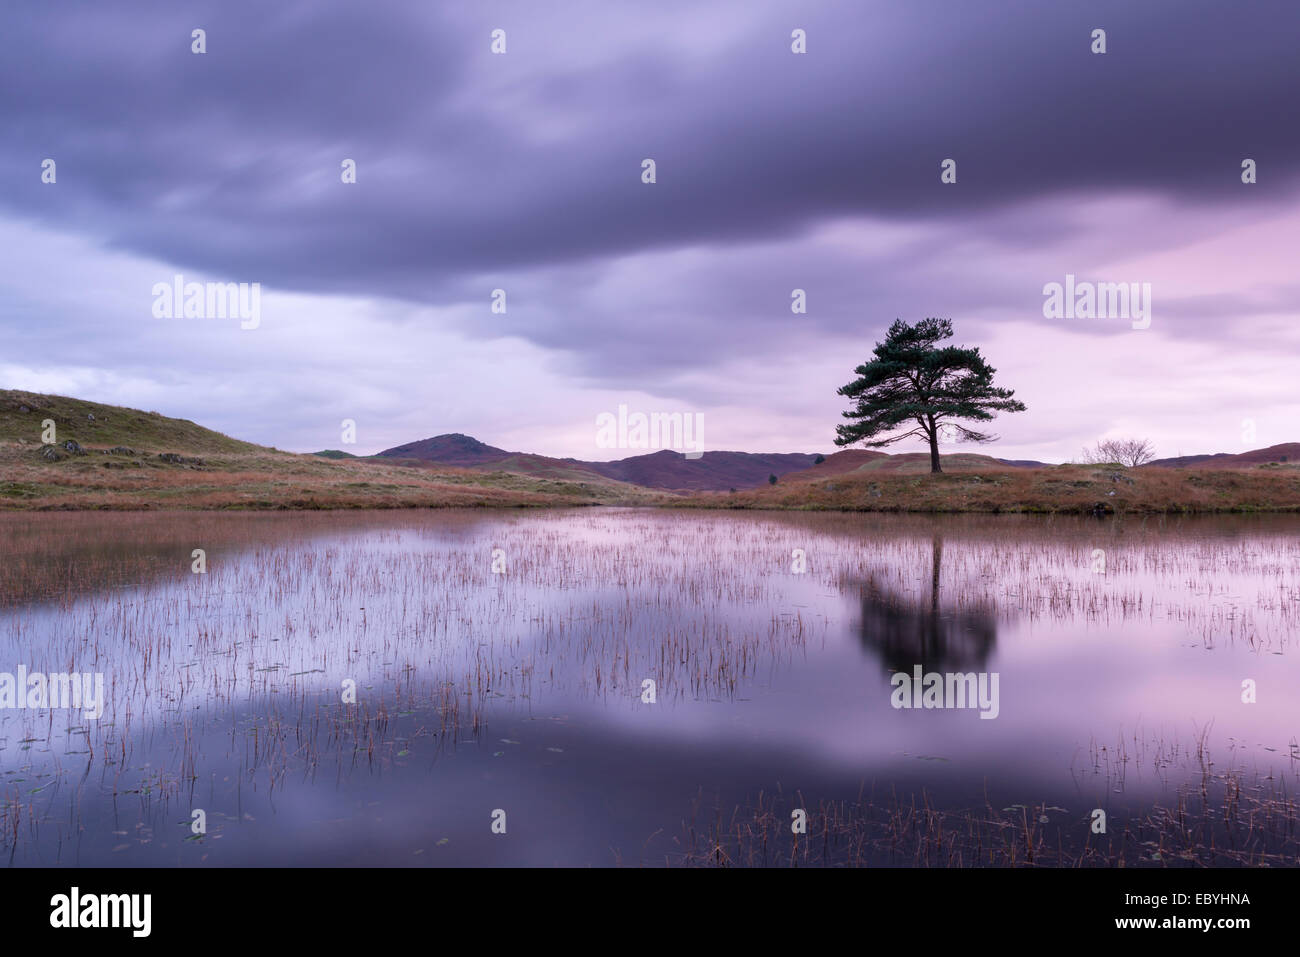 Kelly Hall Tarn at twilight, Lake District, Cumbria, England. Autumn (November) 2014. - Stock Image